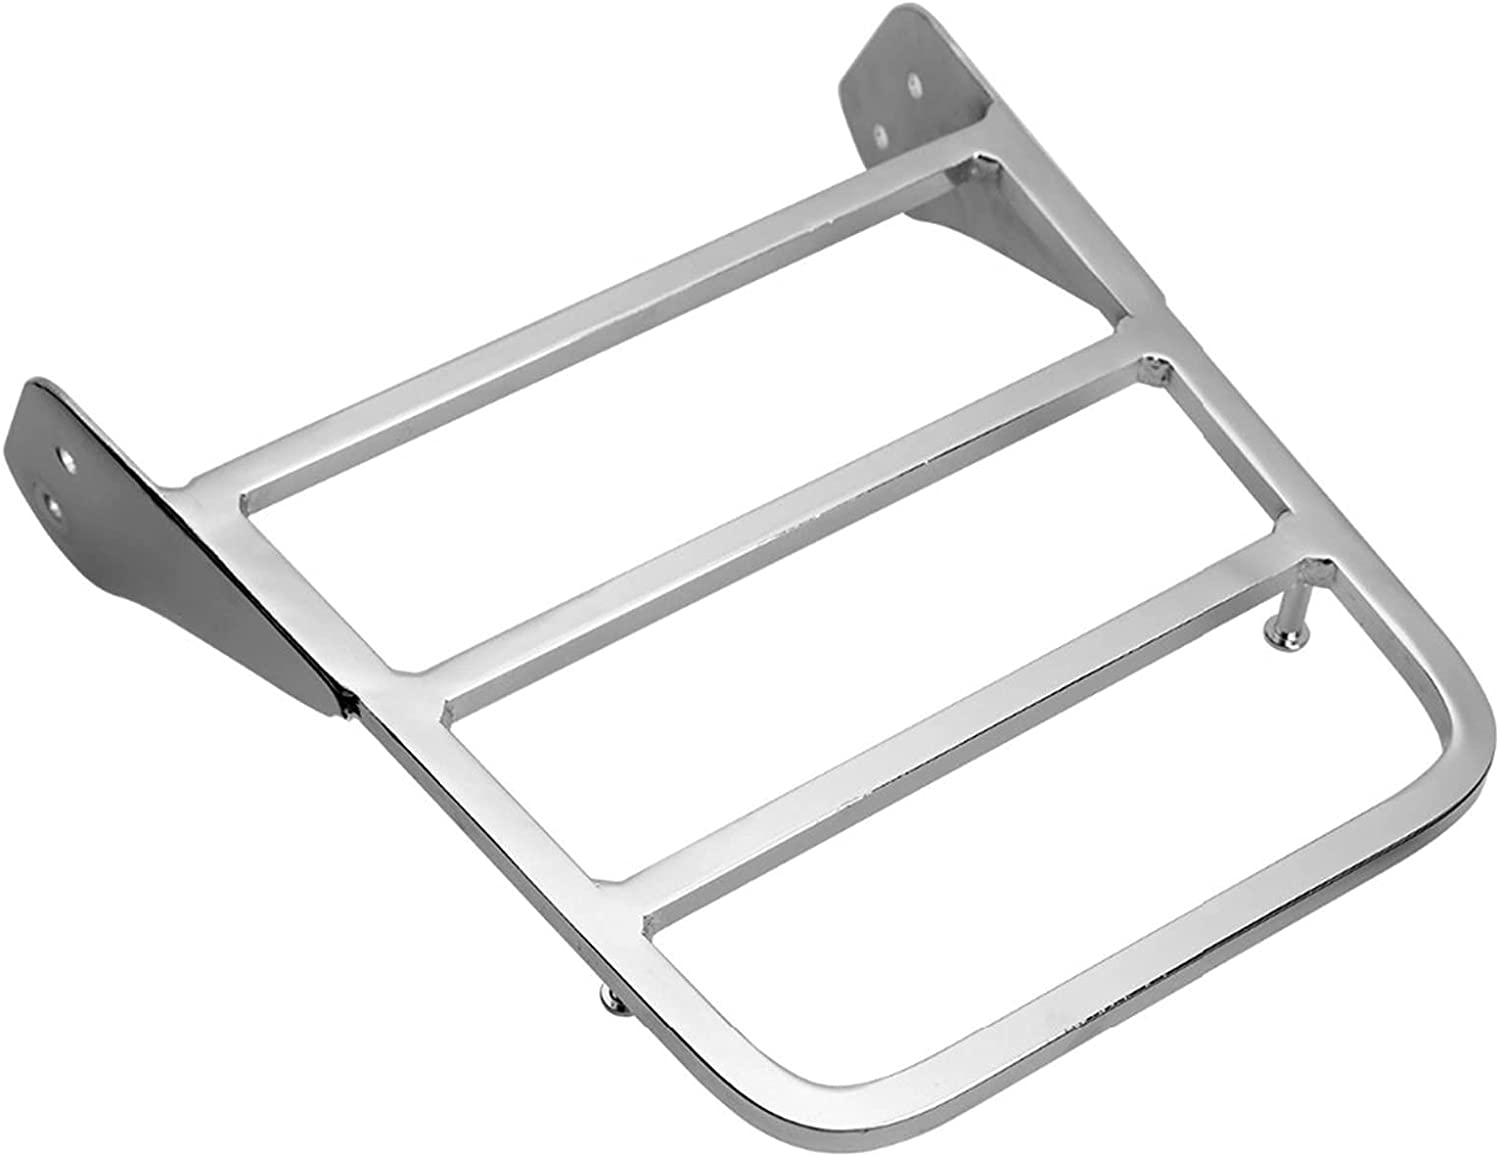 Anzy Motorcycle Luggage Rack for Ya-maha 1100 650 Cl Ranking TOP7 Sale special price V-Star 400